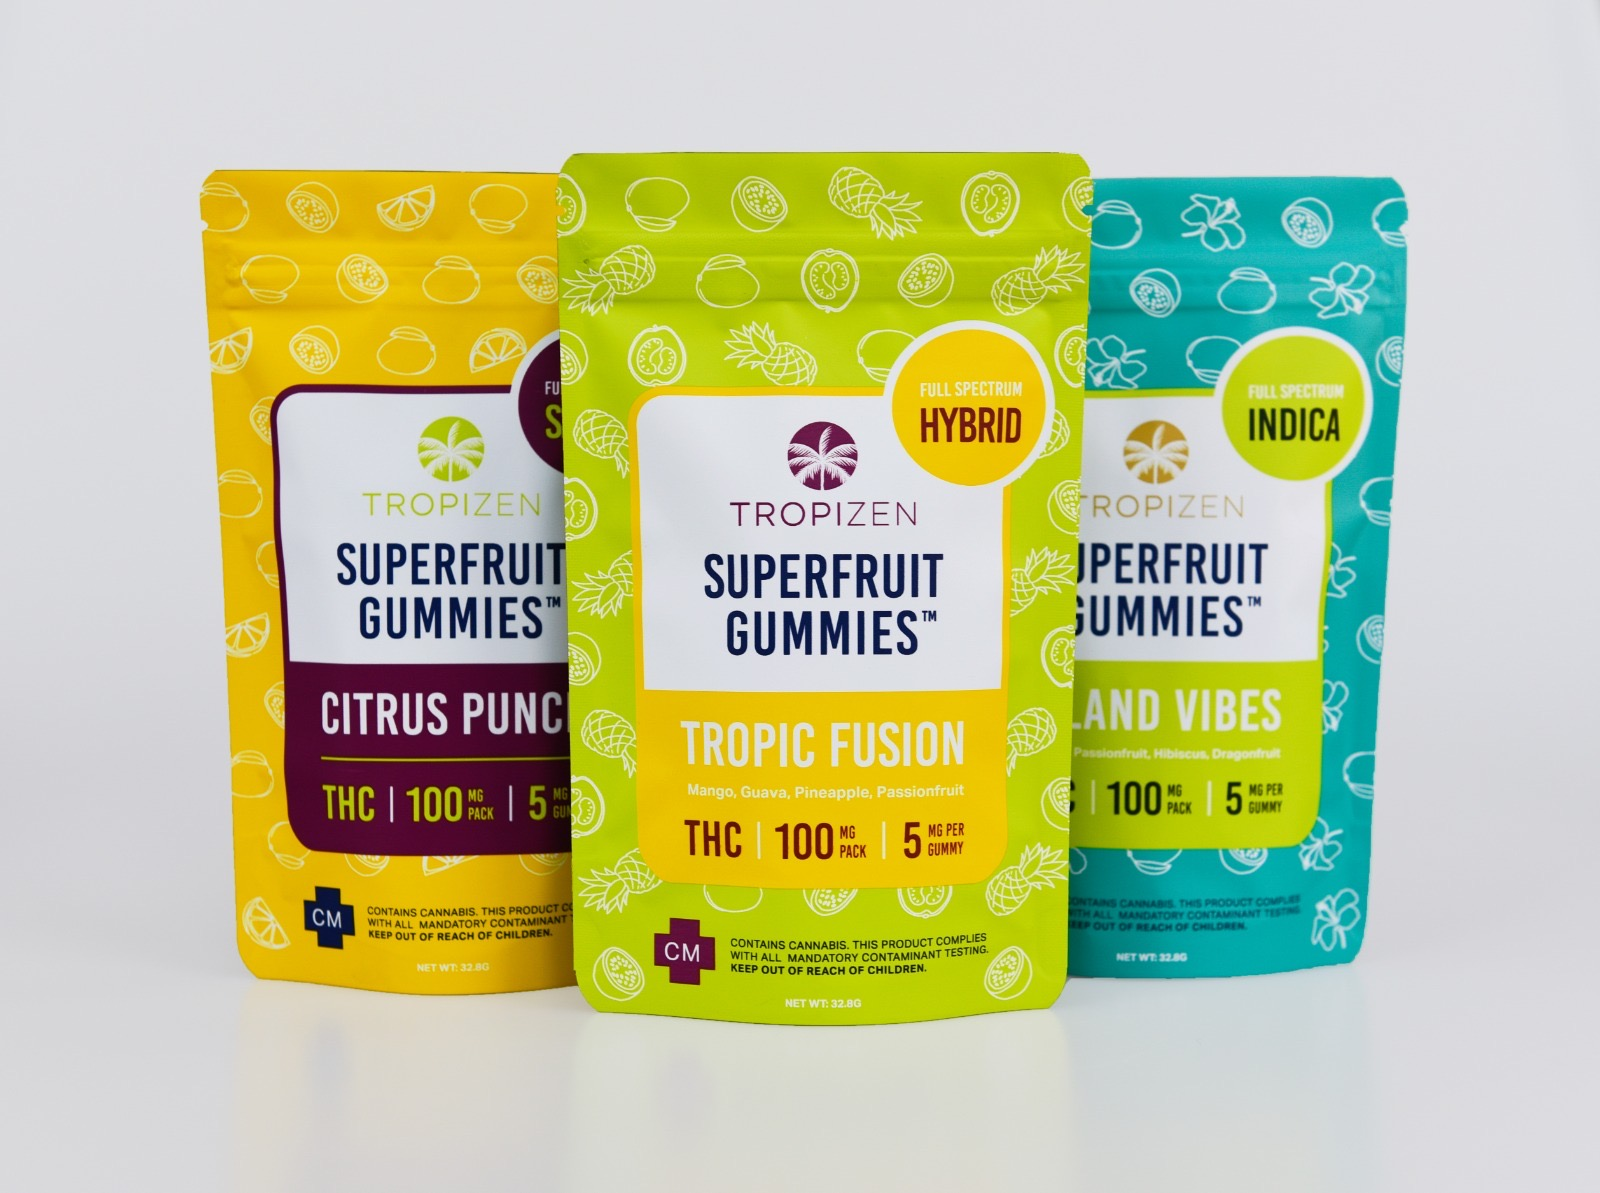 Tropizen's Cannabis Infused Superfruit Gummies